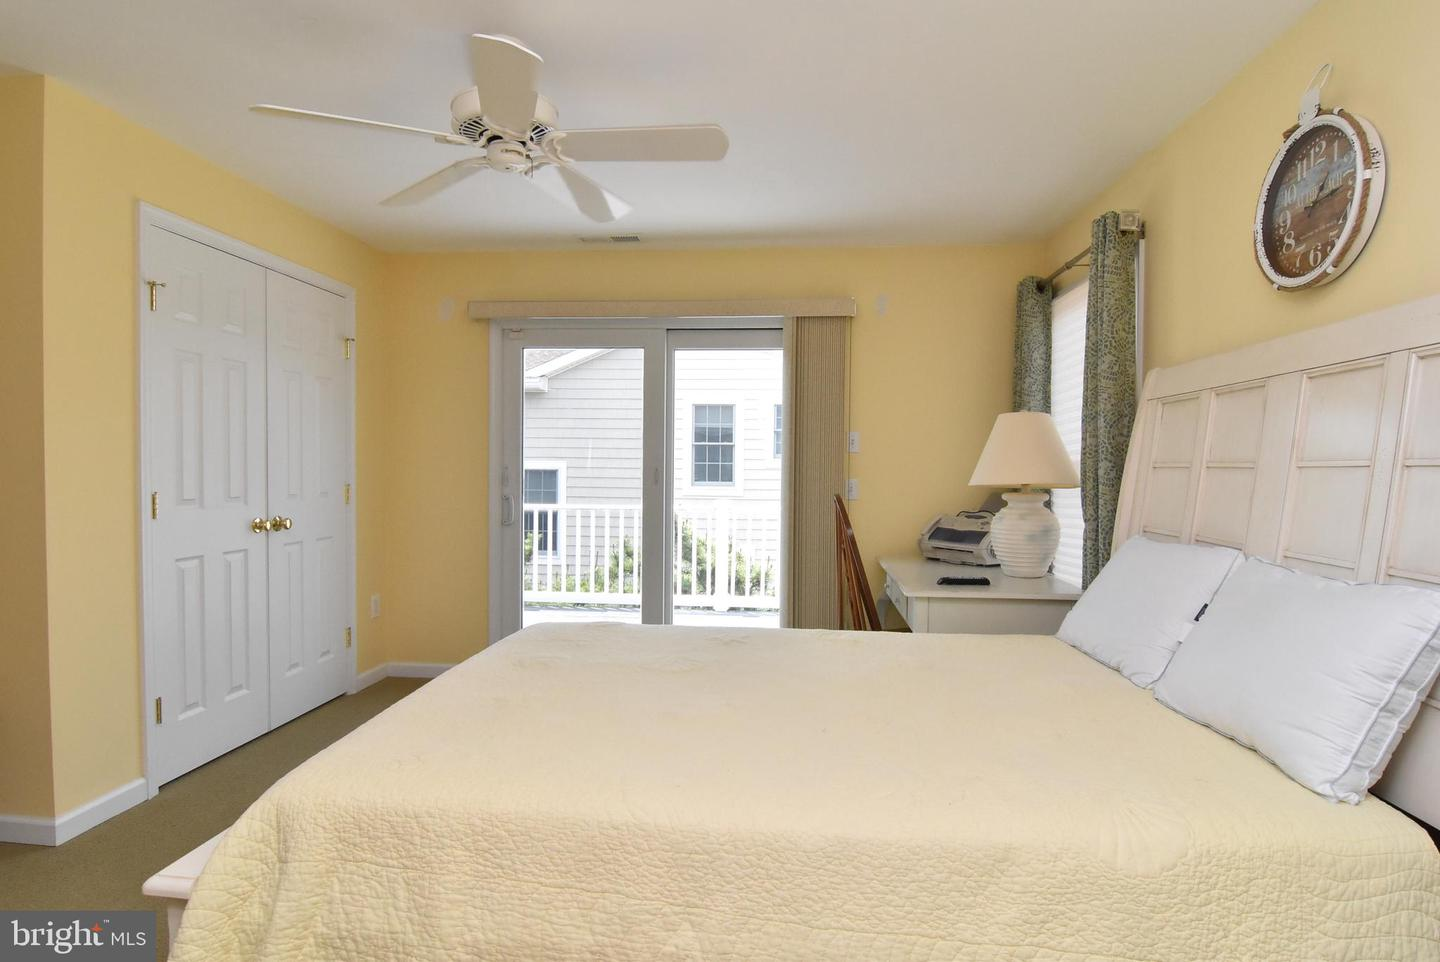 DESU141210-301754685856-2019-05-30-08-28-54 87 N Atlantic Ave | Bethany Beach, De Real Estate For Sale | MLS# Desu141210  - Suzanne Macnab